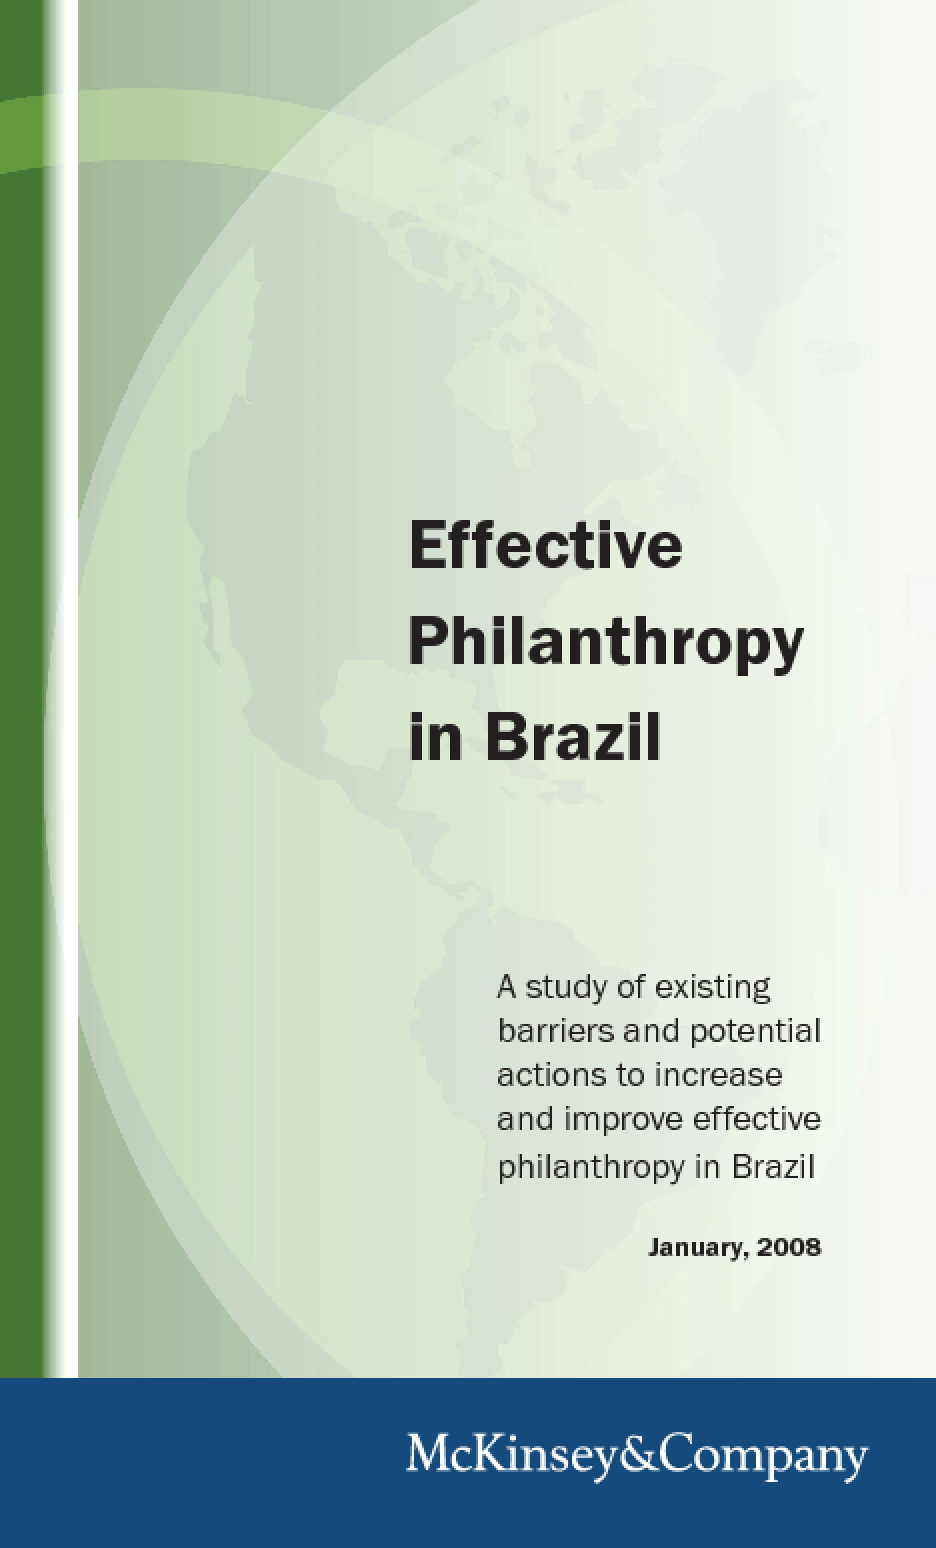 Effective Philanthropy in Brazil